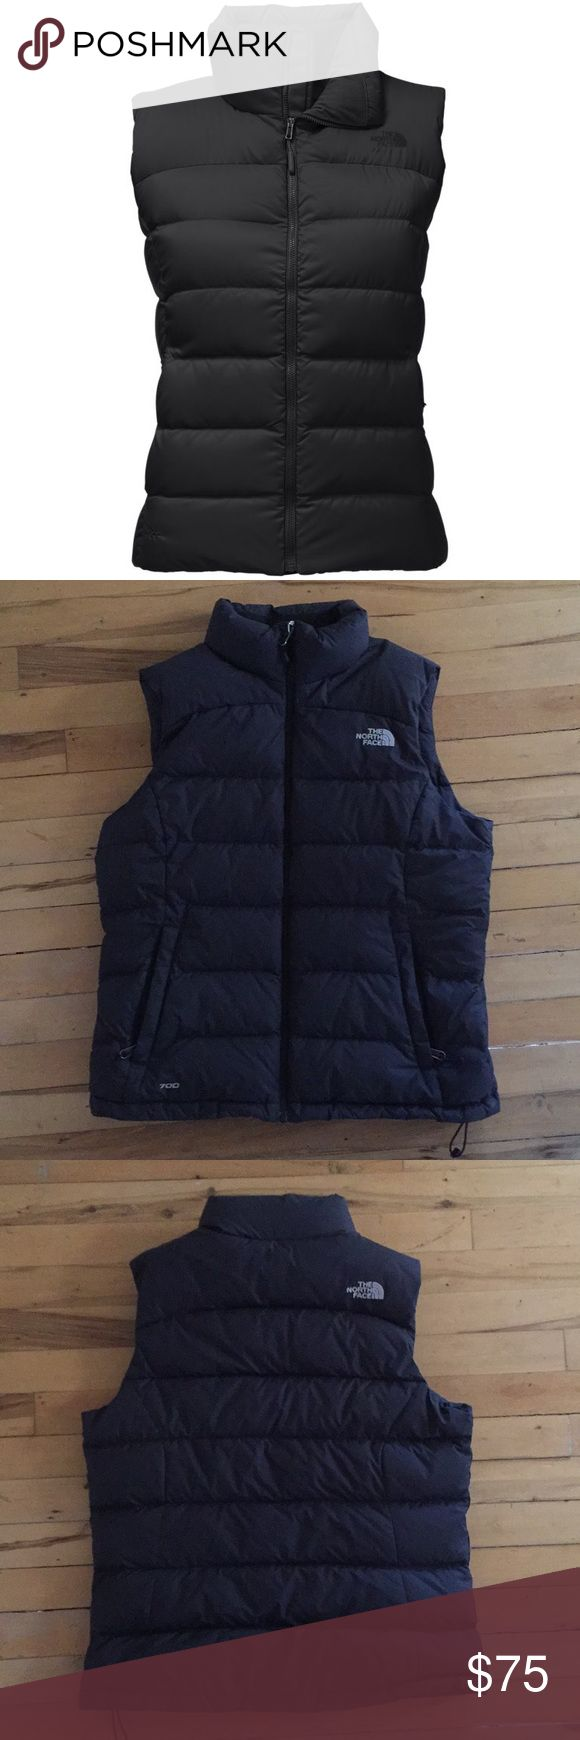 North Face Women's Nuptse Vest M Only worn one Women's North Face Nuptse Vest with 700-fill goose down. In perfect condition! Women's Black Size Medium. Super cute and cozy!!  Sporting an updated fit with sleek quilt lines, the classic Nuptse vest provides lofty, puffed warmth with deep baffles that are stuffed with 700-fill goose down to capture warmth around your torso. The North Face Jackets & Coats Vests